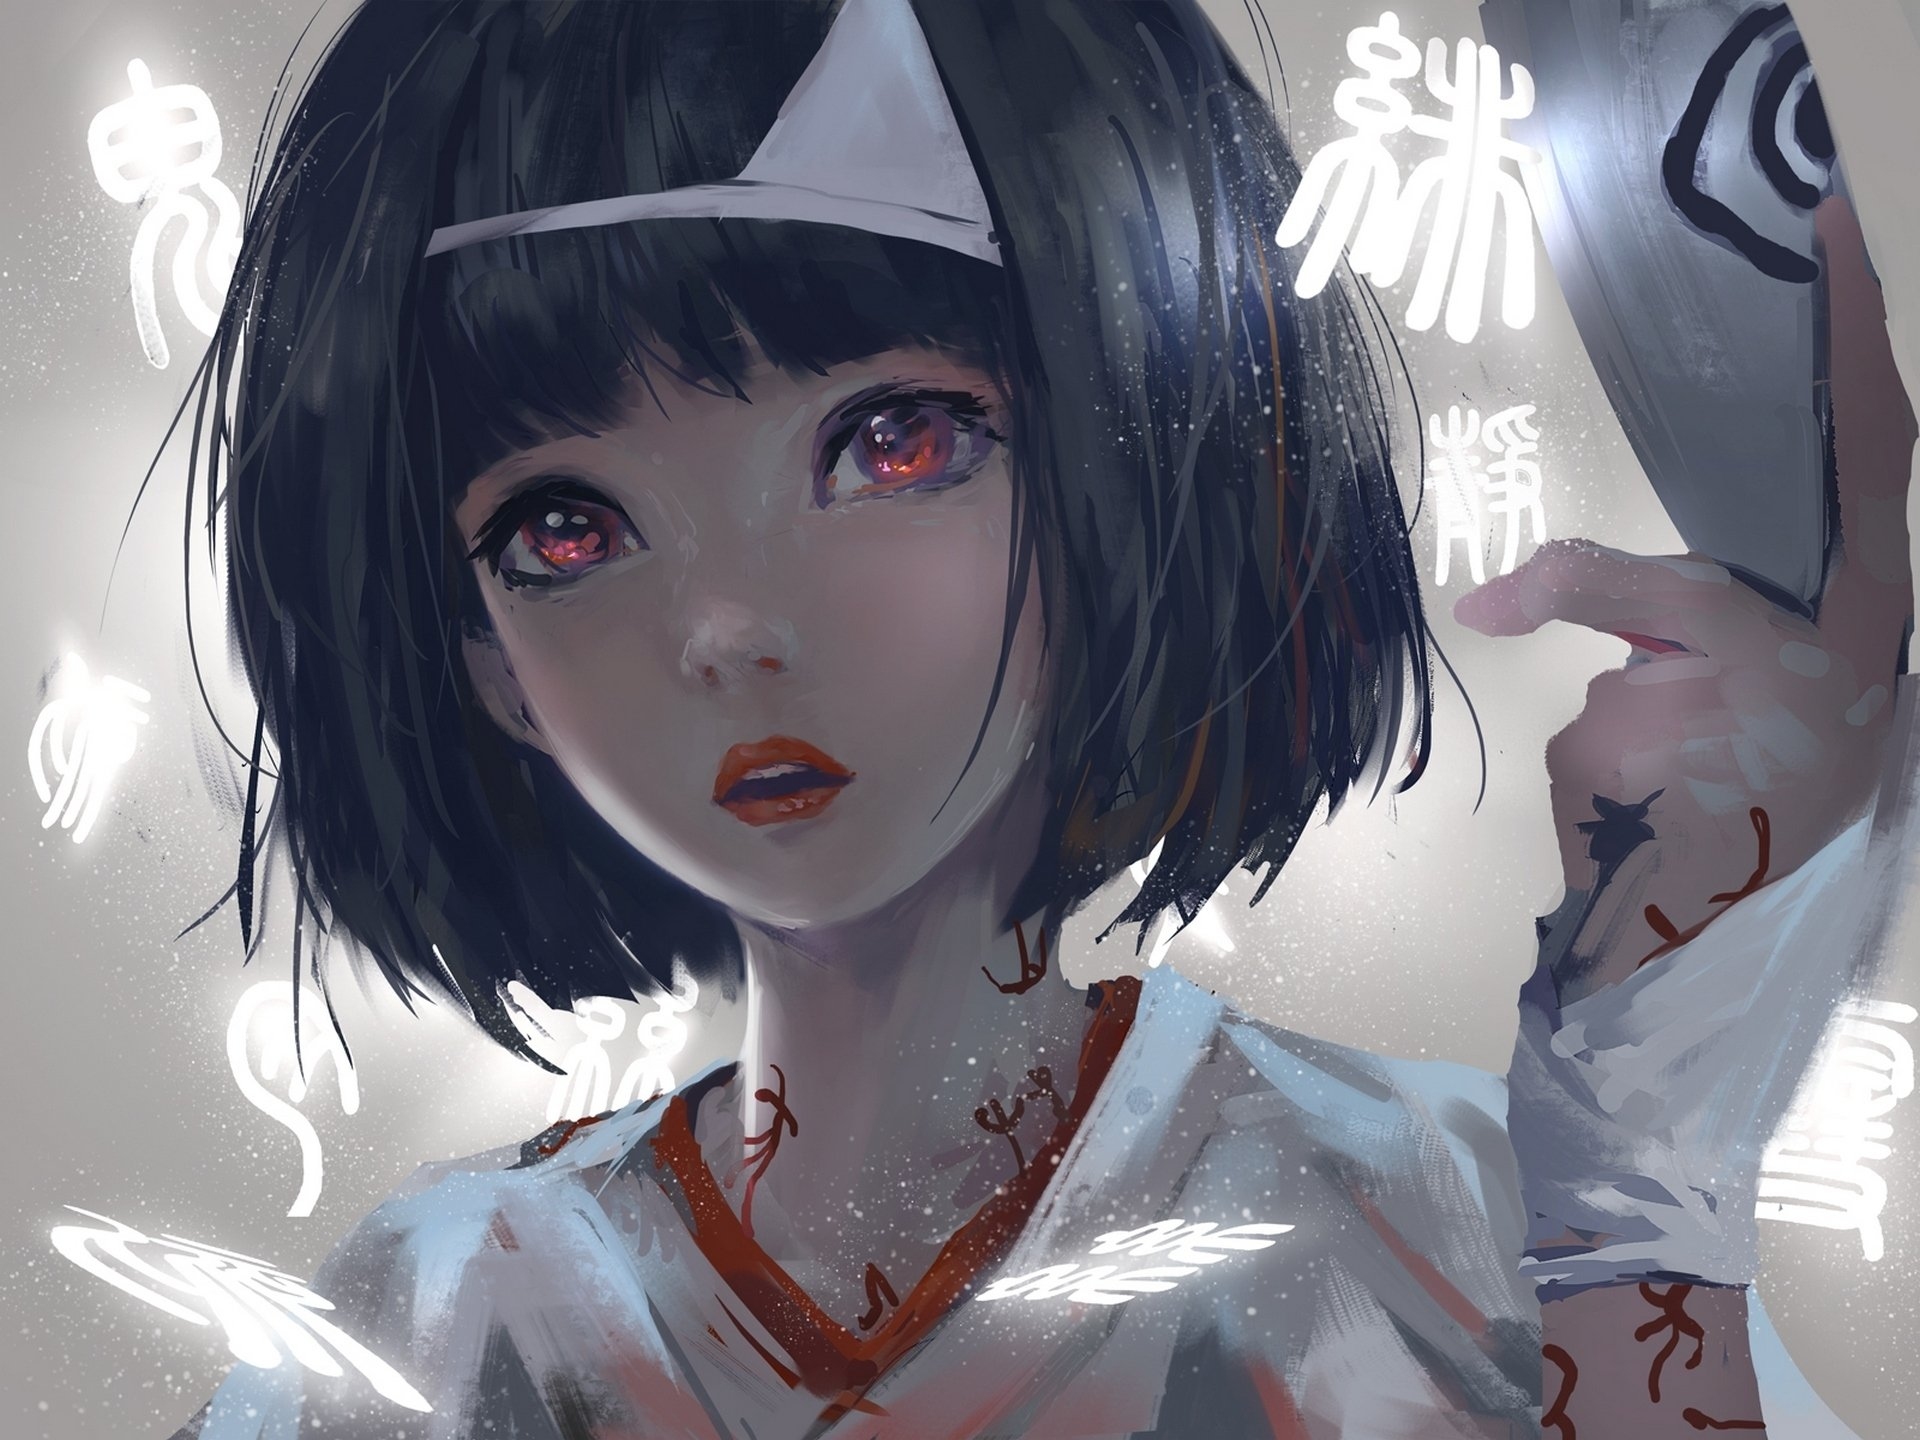 动漫 - 野良神  Nora (Noragami) 女孩 Short Hair Black Hair Red Eyes 壁纸